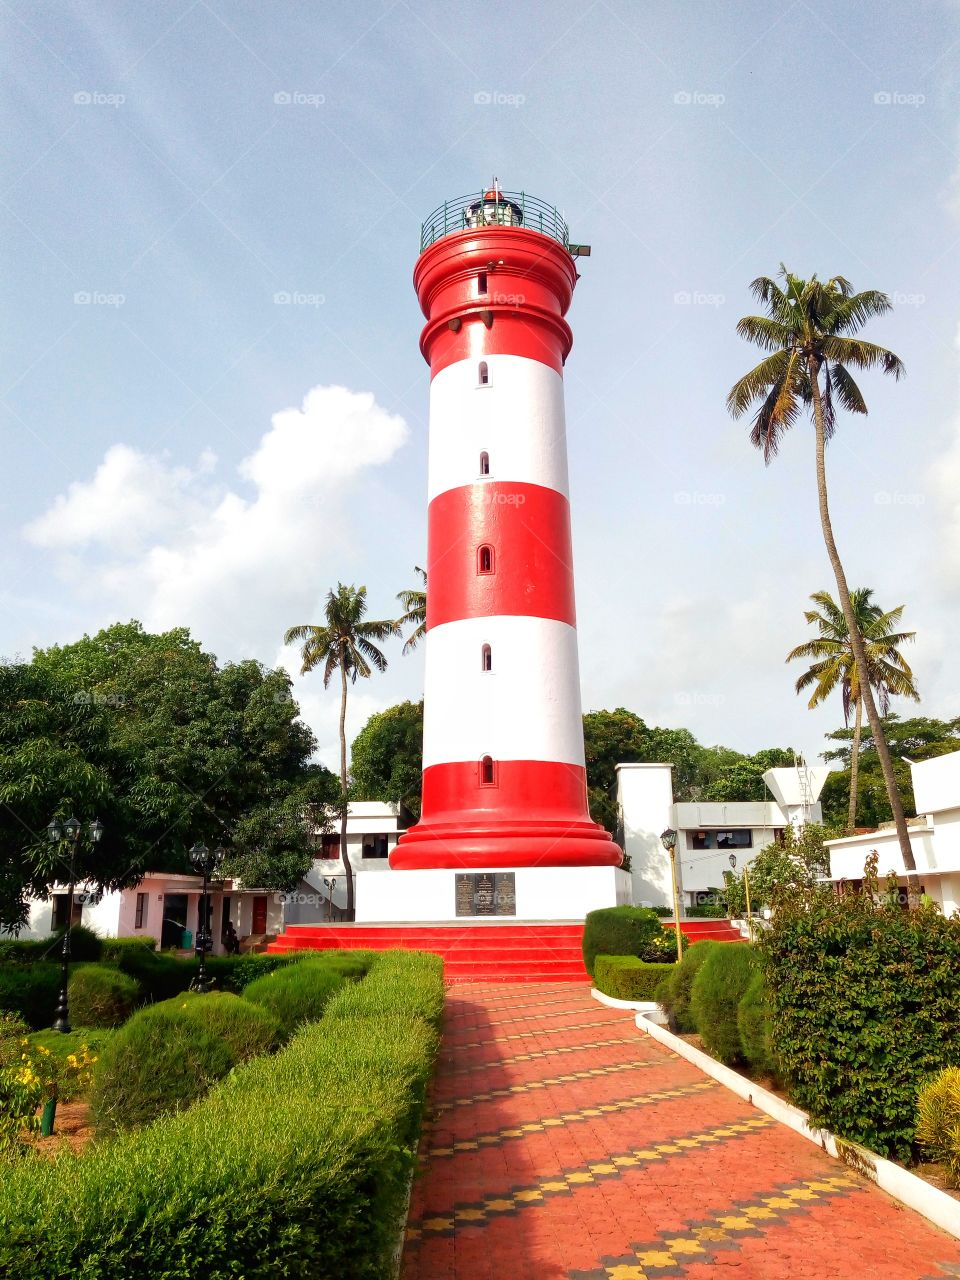 TheAlappuzha Lighthouse(orAlleppey Light) is situated in the coastal town ofAlappuzha,Kerala. It was built in 1862 and is a major tourist attraction.This is the first of its kind in the Arabian sea coast of Kerala.Alappuzha,Kerala,India